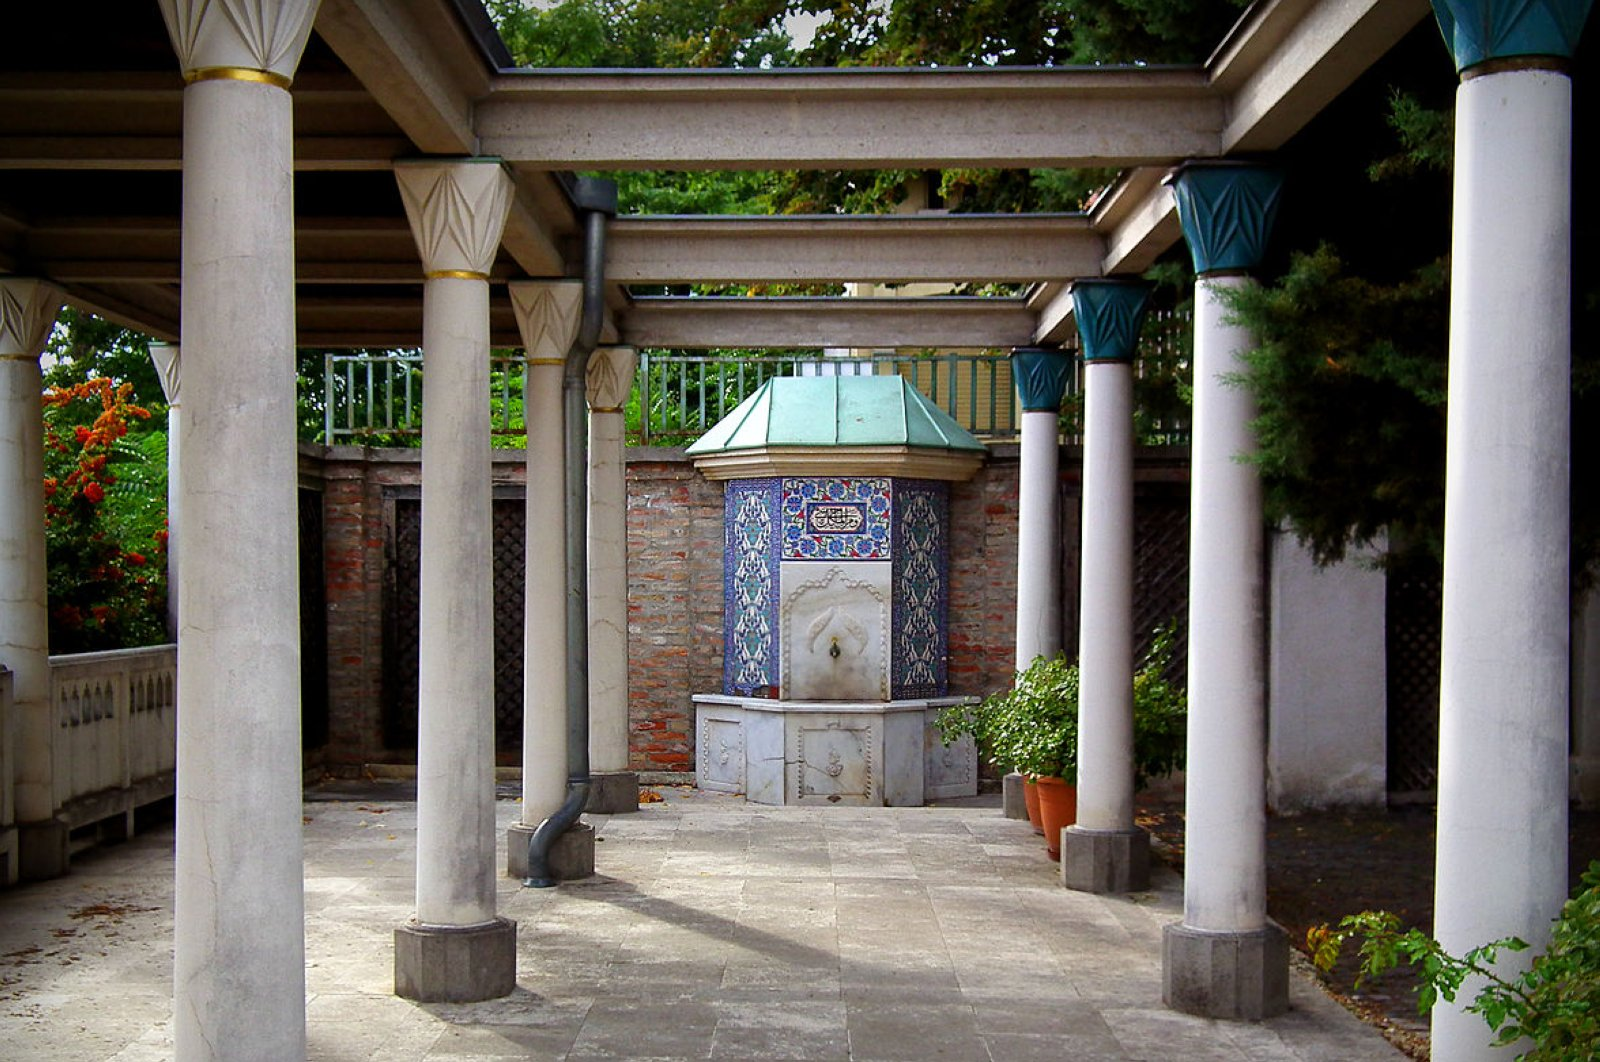 A fountain in the garden of the Tomb of Gül Baba, Budapest, Hungary.